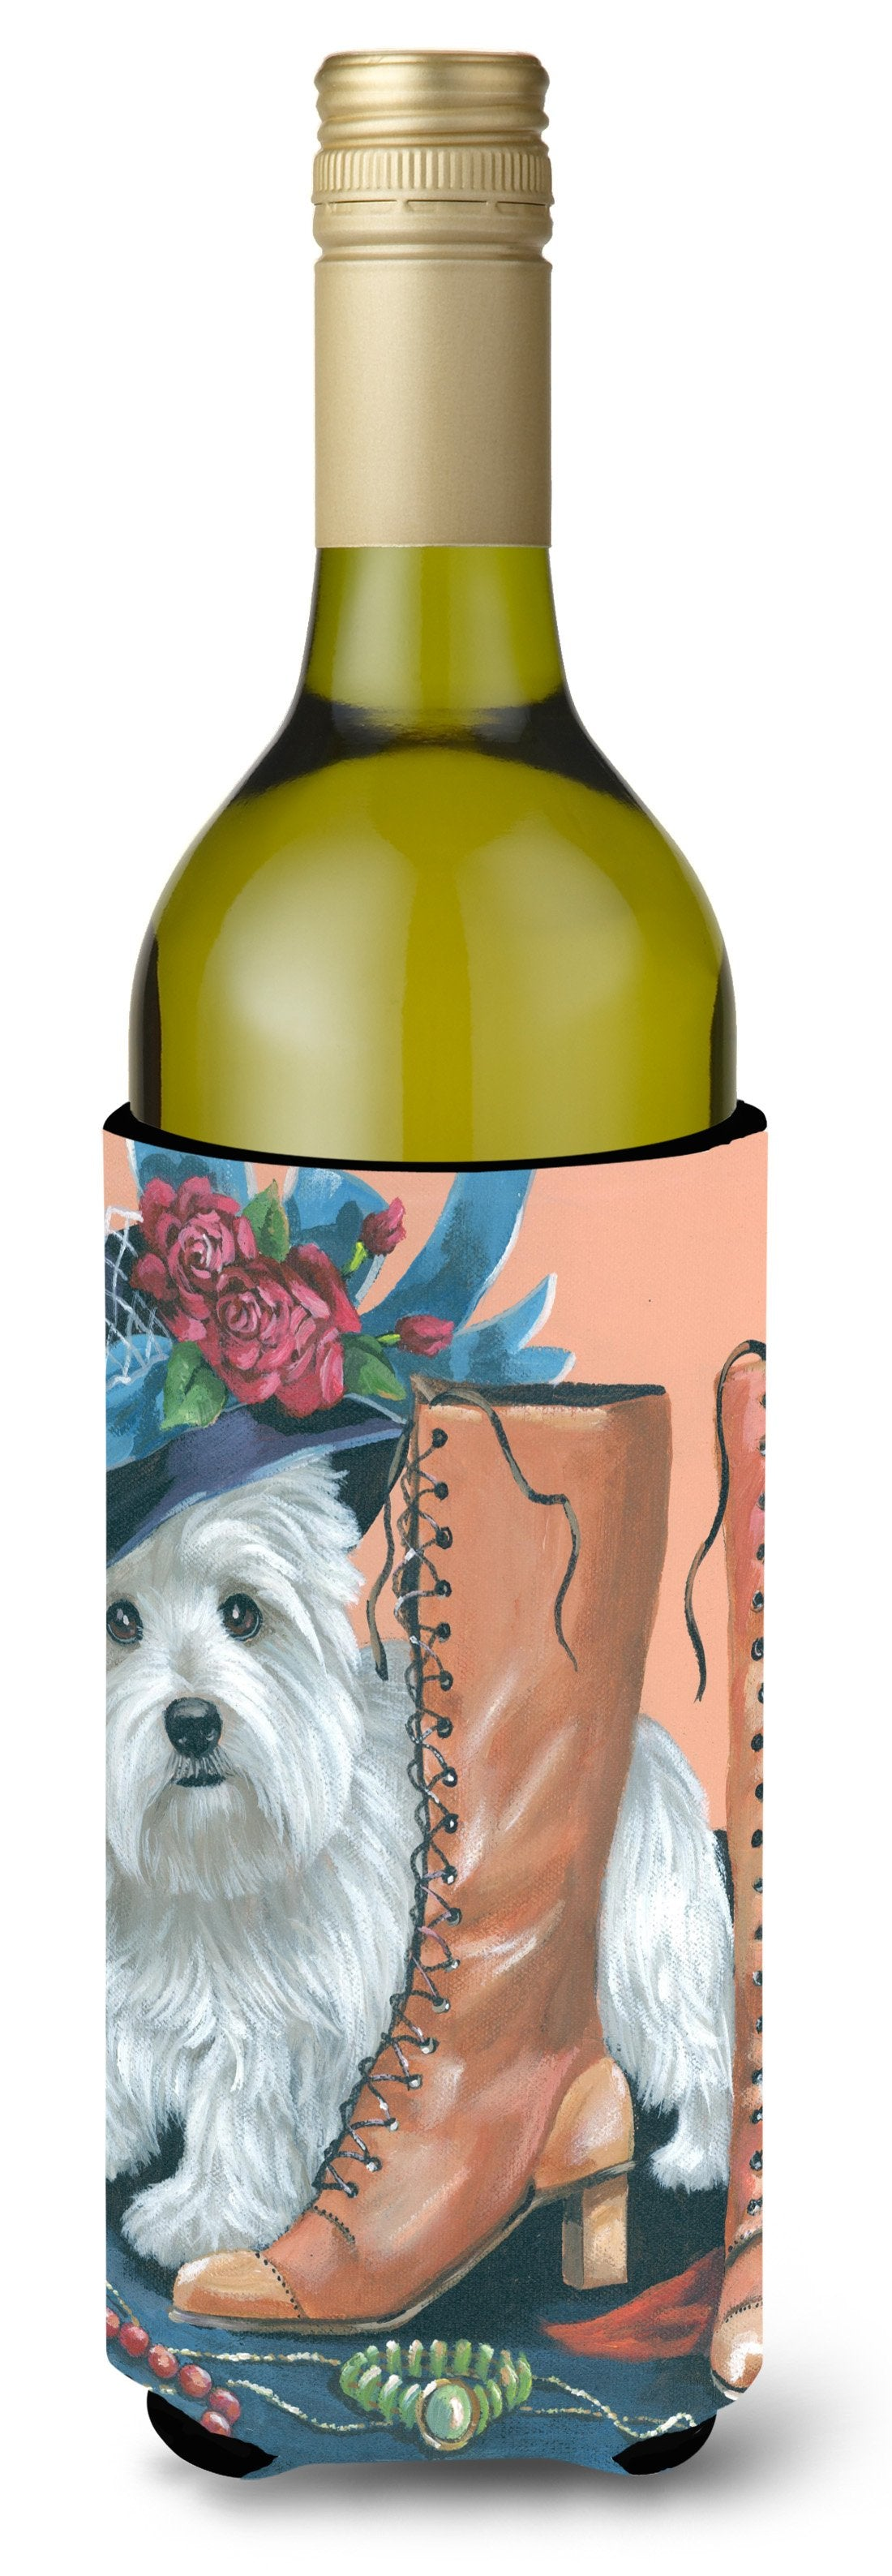 Westie in Mom's Closet Wine Bottle Hugger PPP3211LITERK by Caroline's Treasures